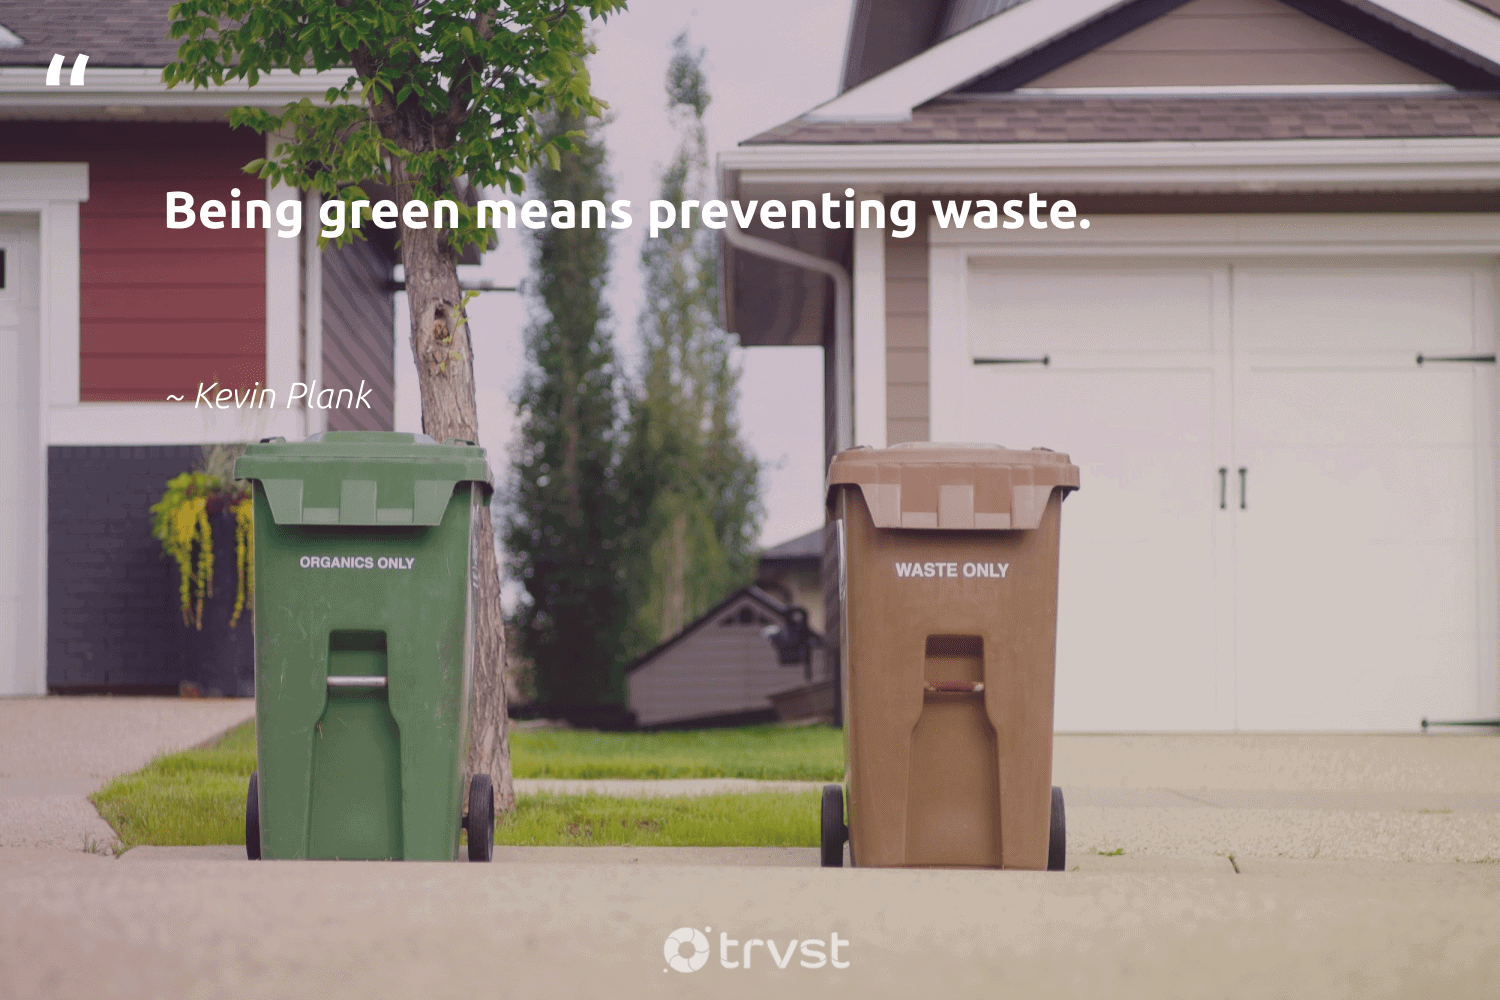 """""""Being green means preventing waste.""""  - Kevin Plank #trvst #quotes #waste #green #wastefree #dotherightthing #thinkgreen #ecoconscious #sustainability #changetheworld #changeahabit #gogreen"""